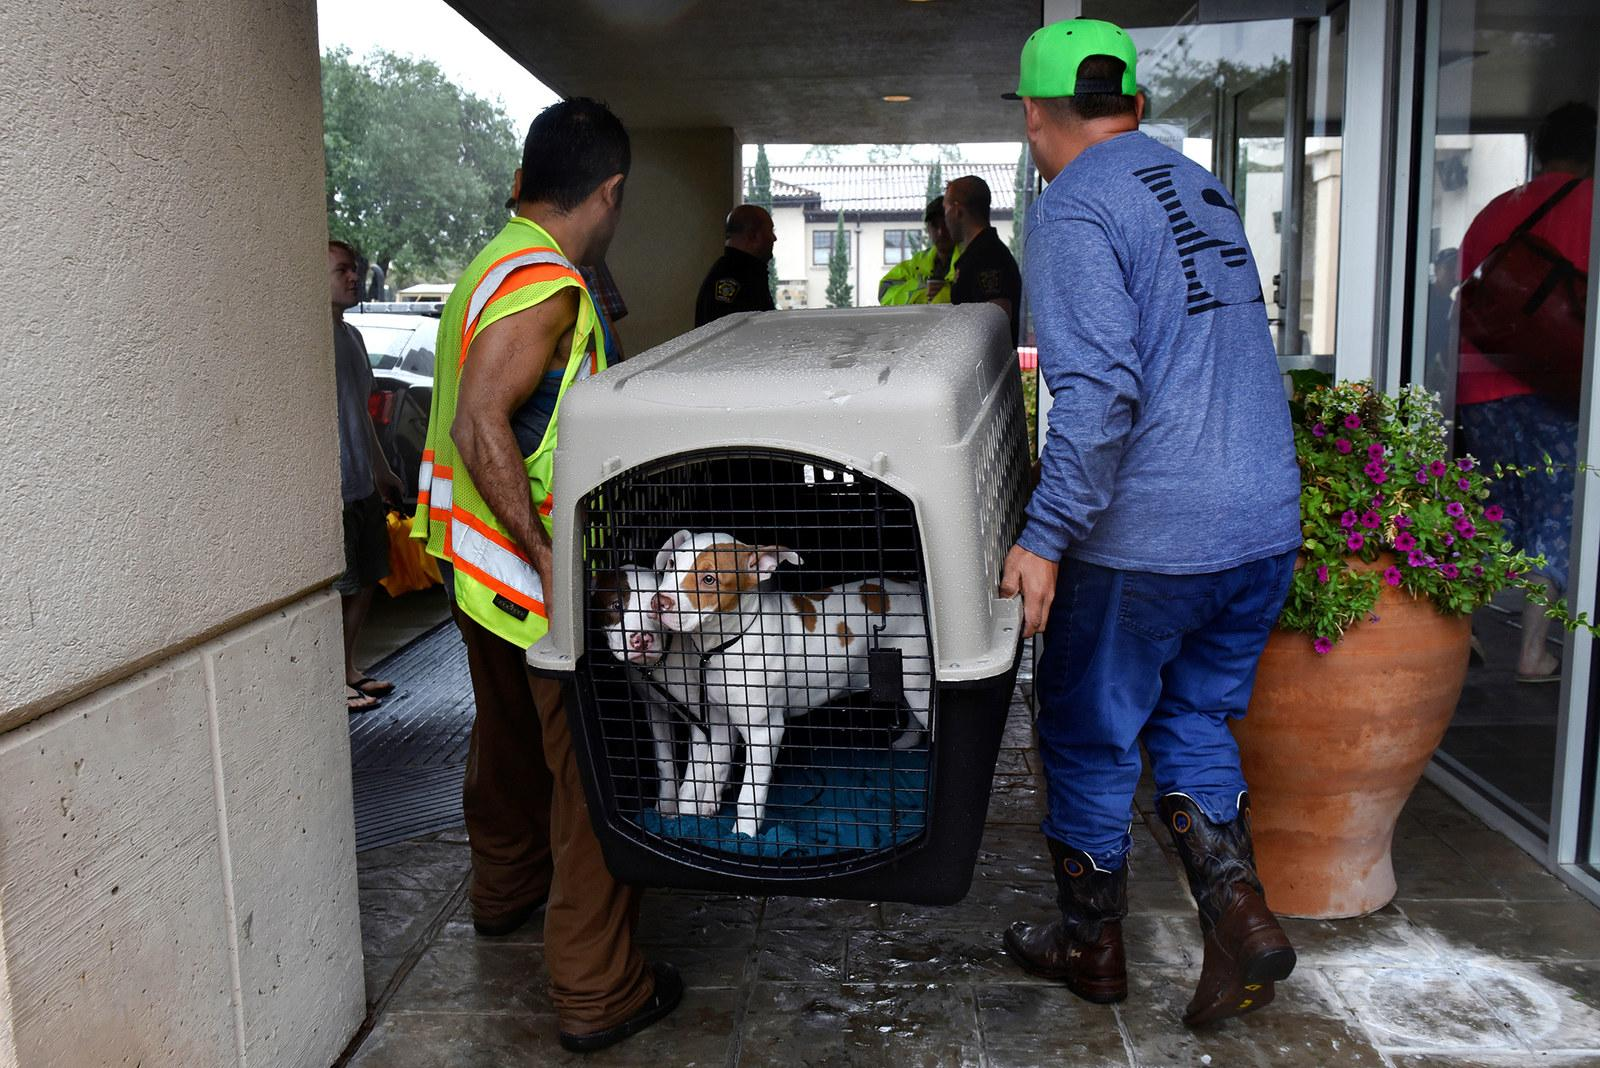 Joshua Garcia (left) and Jesse Cardenas (right) carry rescued dogs into an evacuation center in Bellaire, Texas, on Aug. 28.